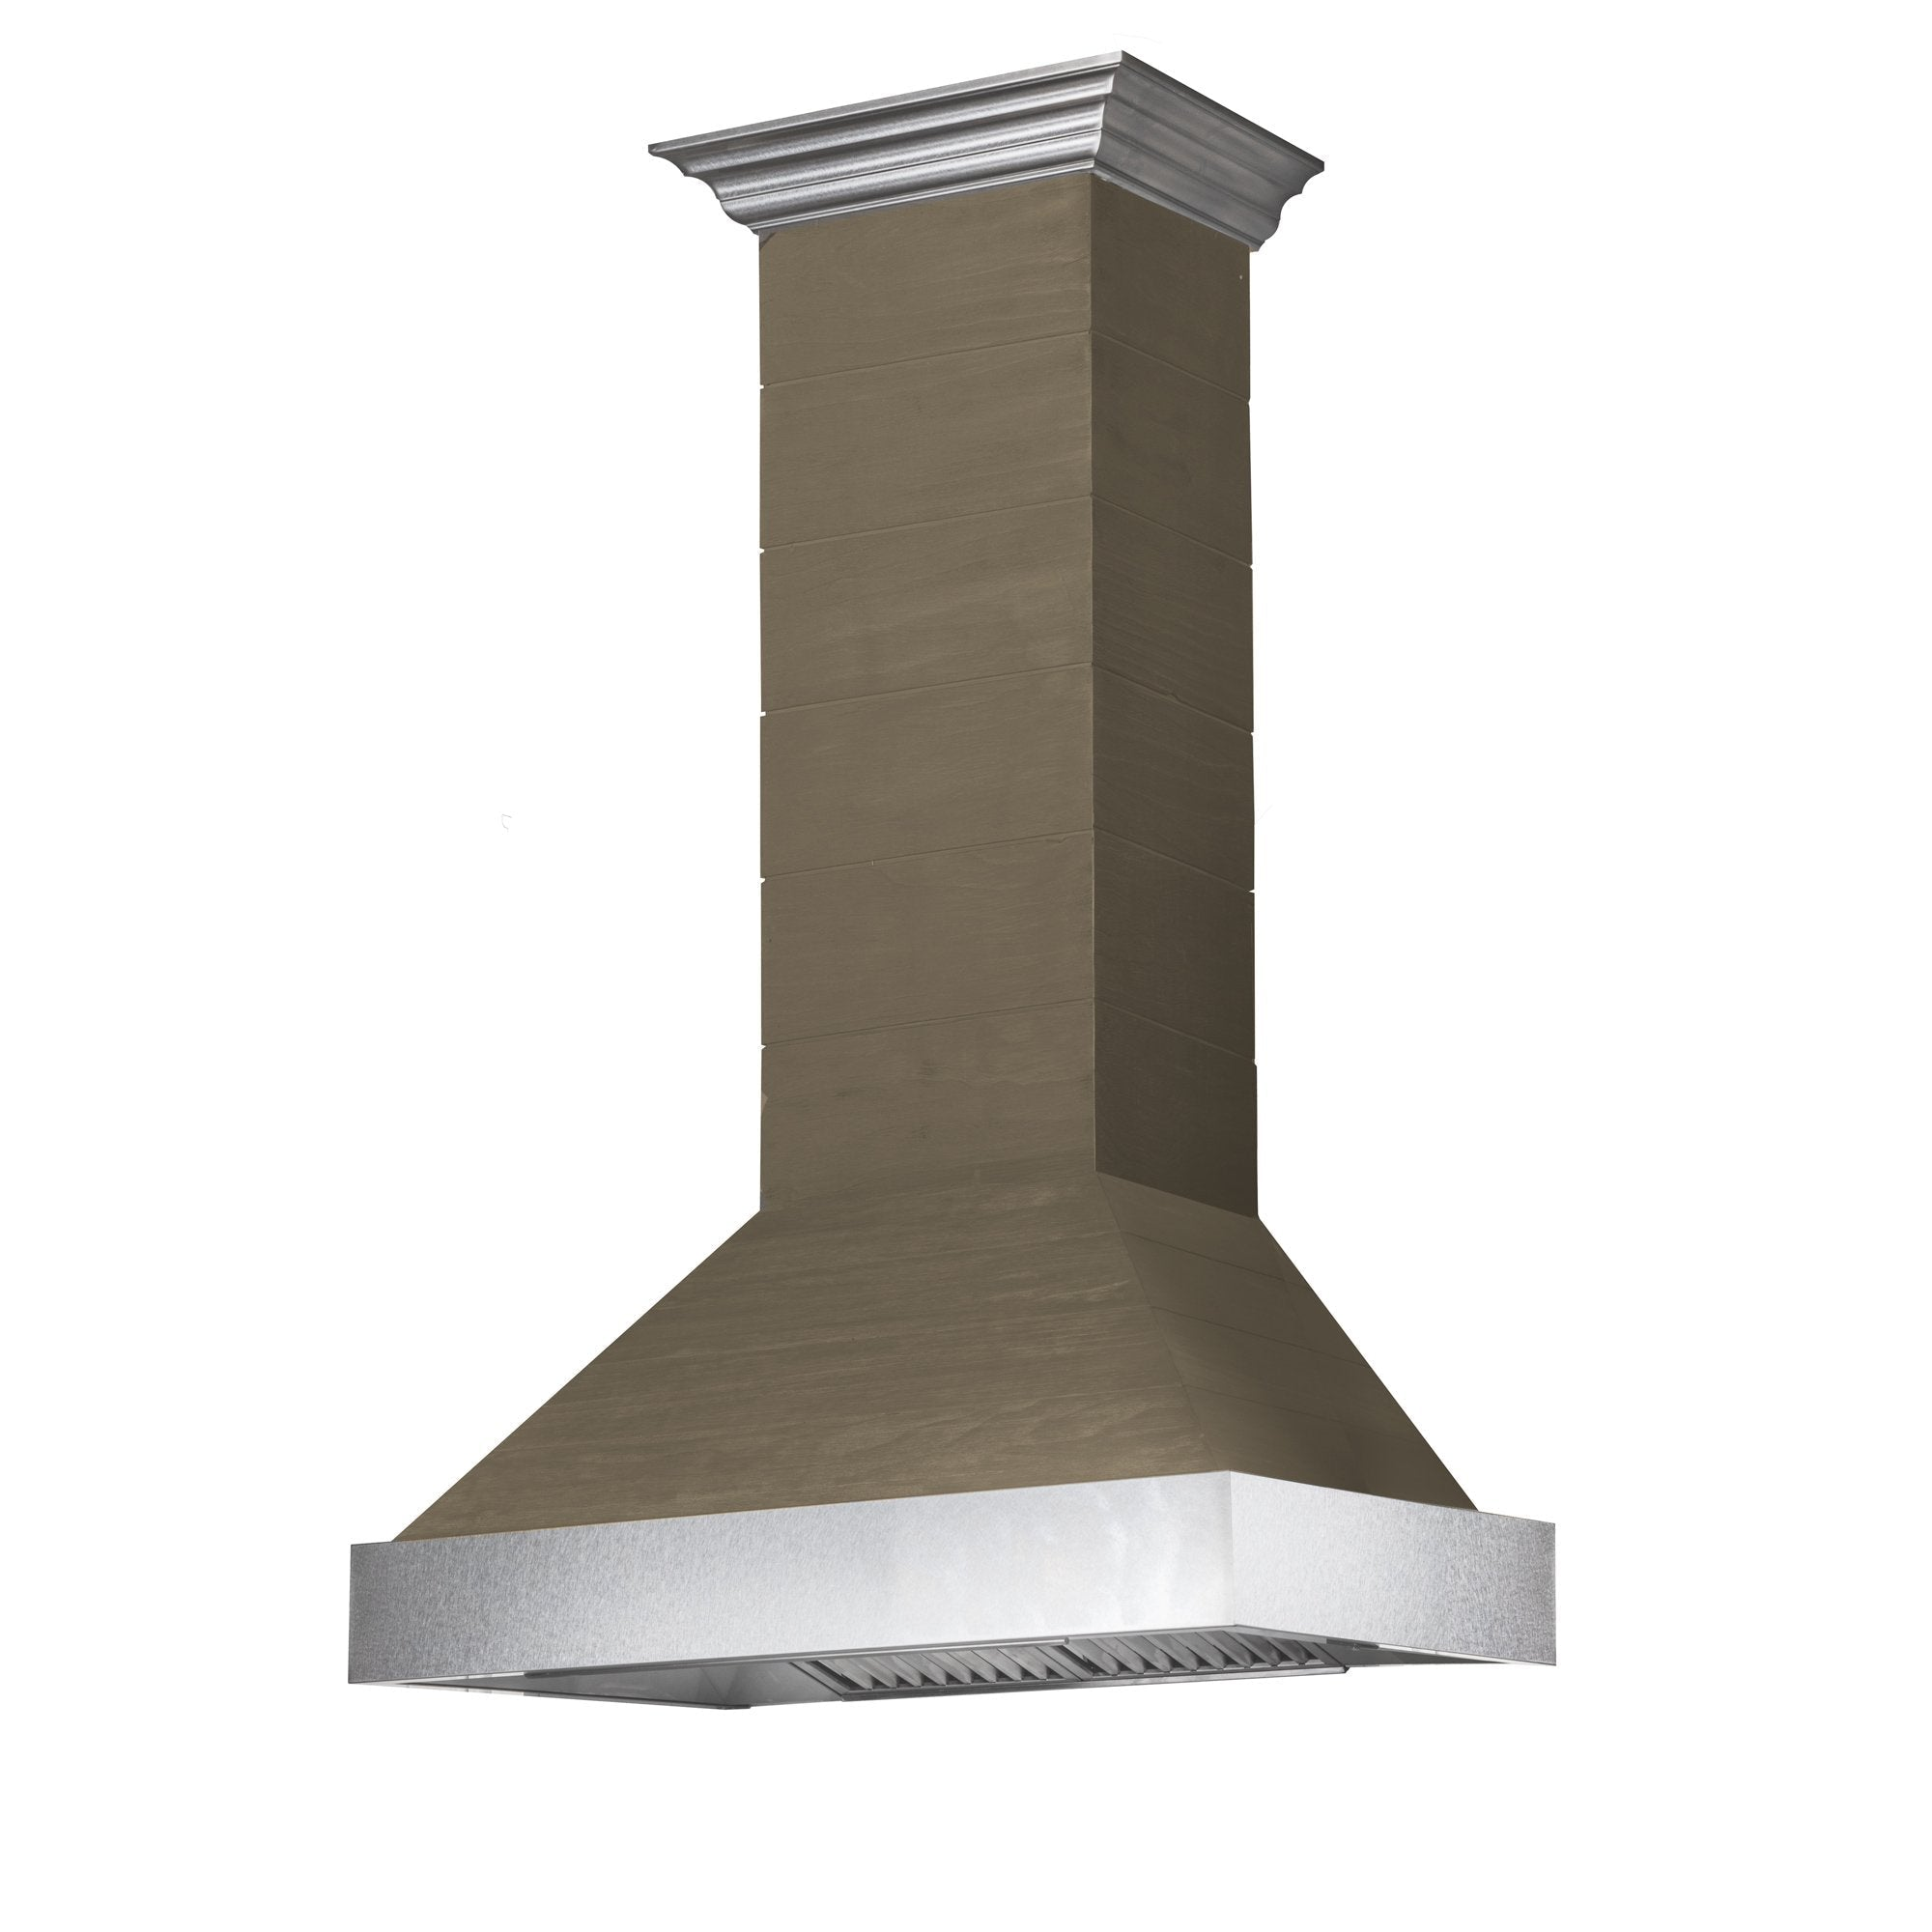 ZLINE Shiplap Wooden Wall Range Hood with Stainless Steel Accent (365YY)